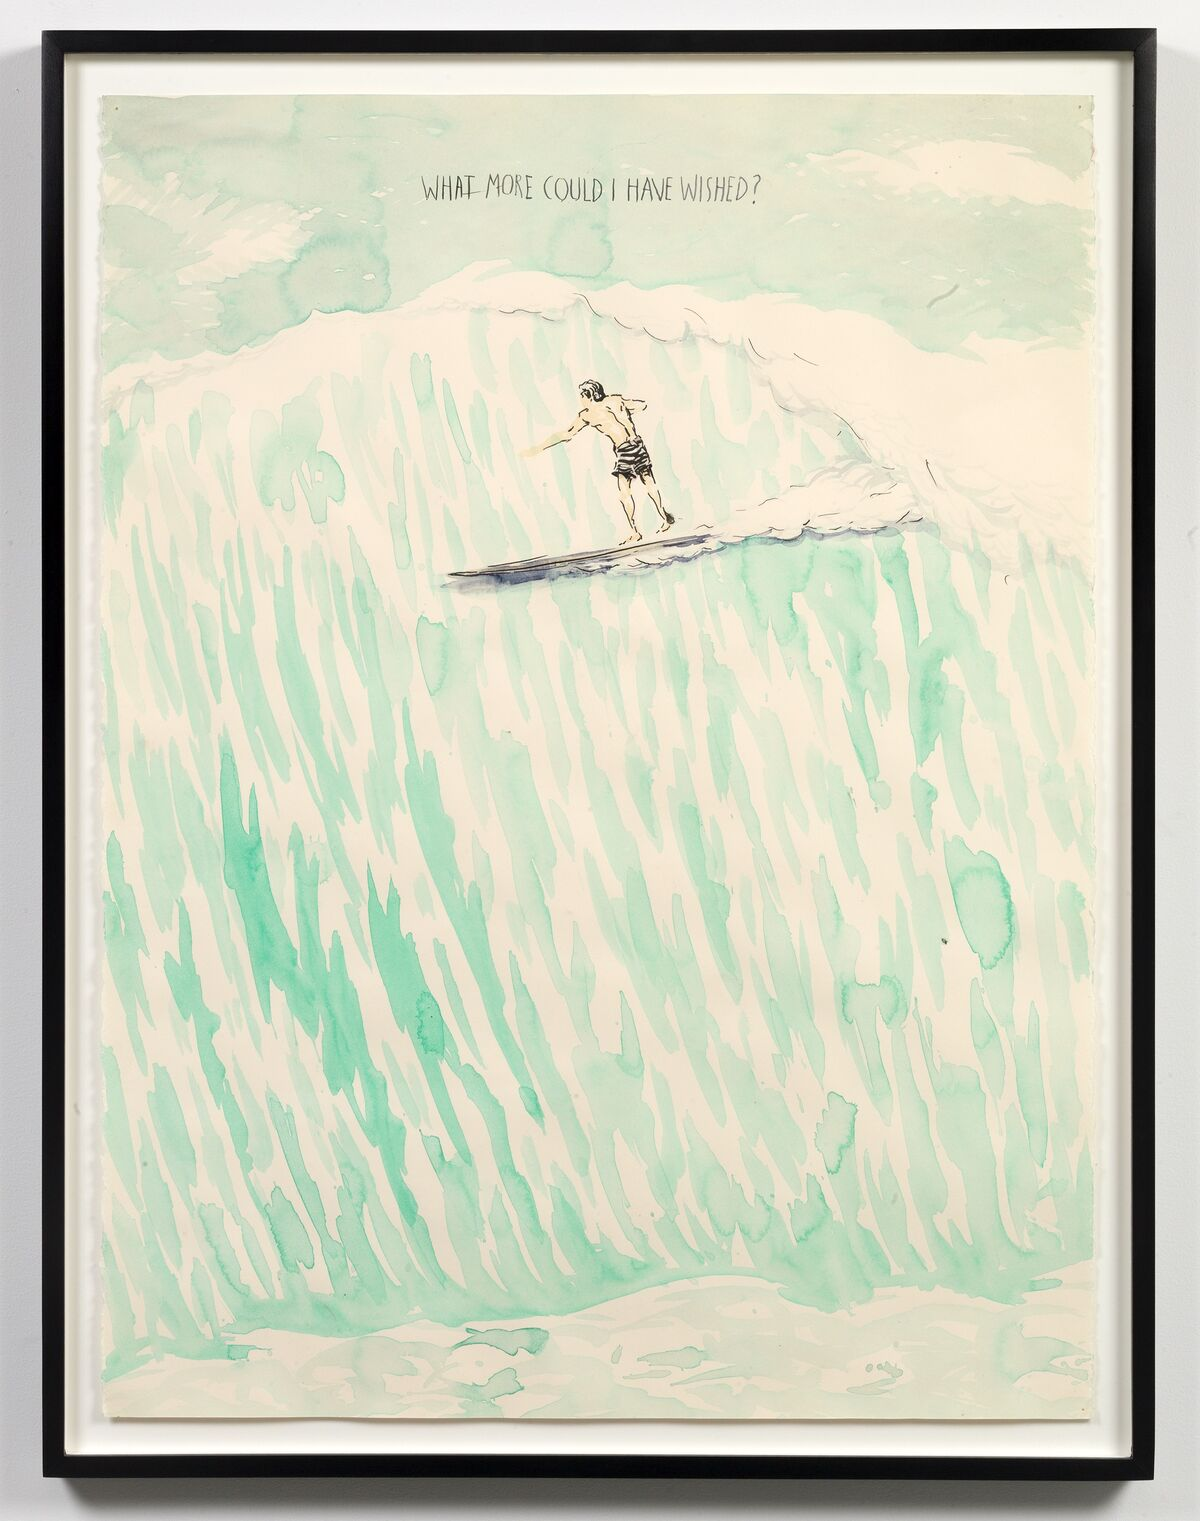 Raymond Pettibon, No Title (What more could...), 1997. Courtesy of David Zwirner, New York.